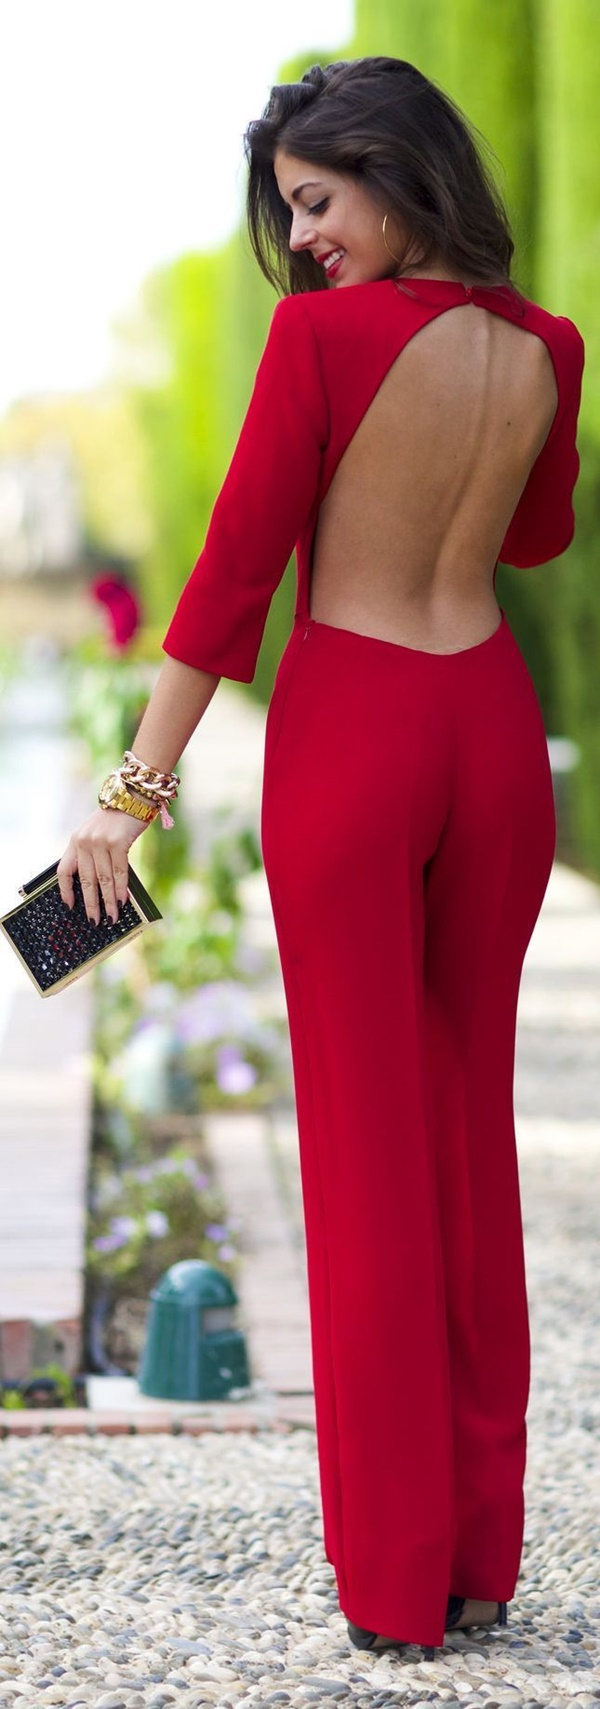 Hot Jumpsuit outfit ideas for Girls5